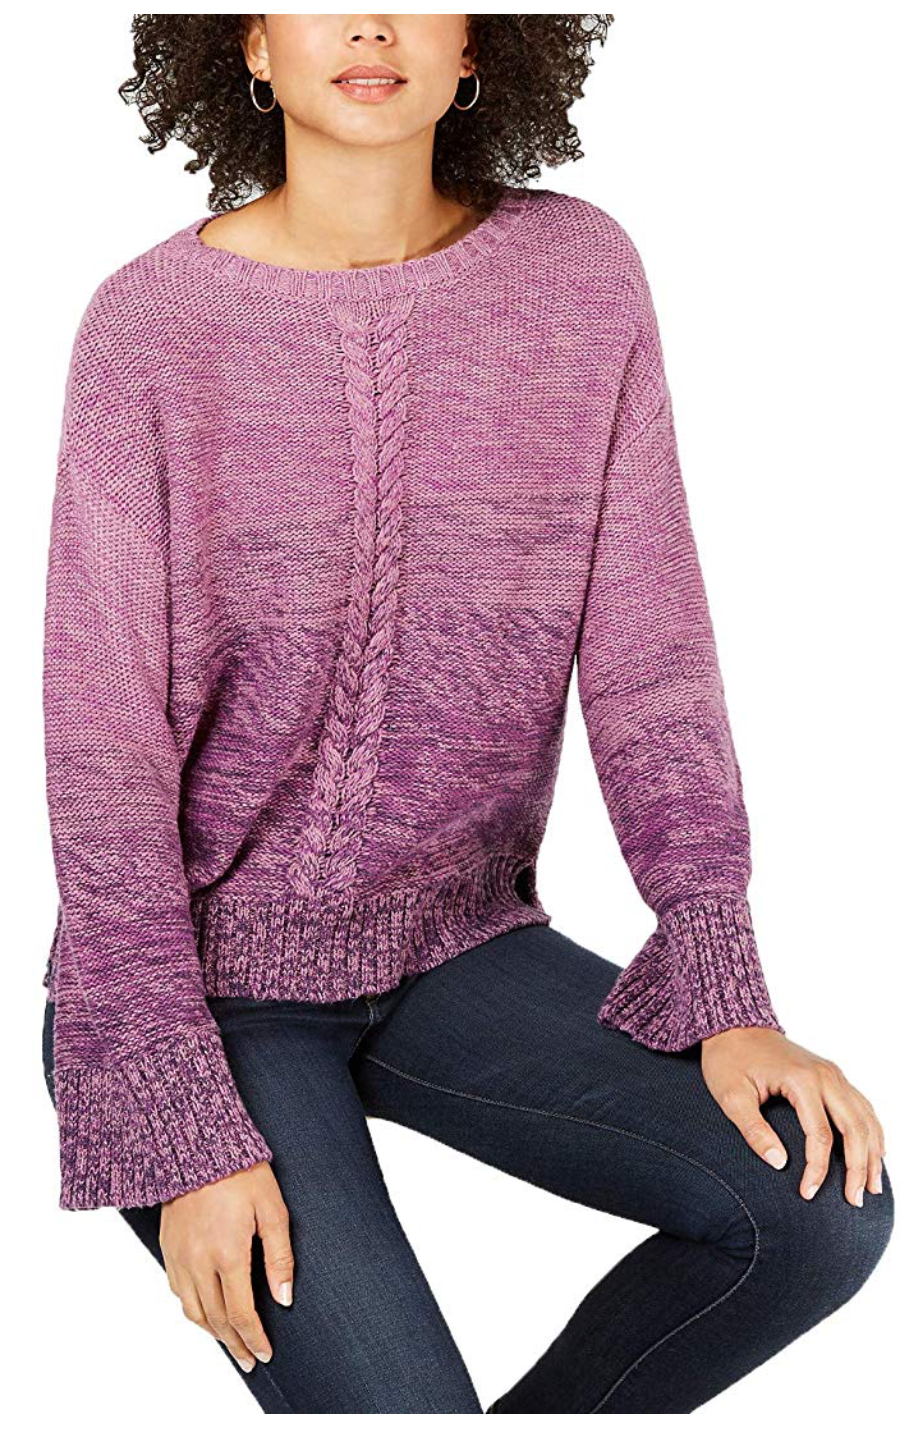 Style & Co. Women's Petite Marled Cable-Knit Sweater, Dark Grape Marl - BrandsForLess.CO